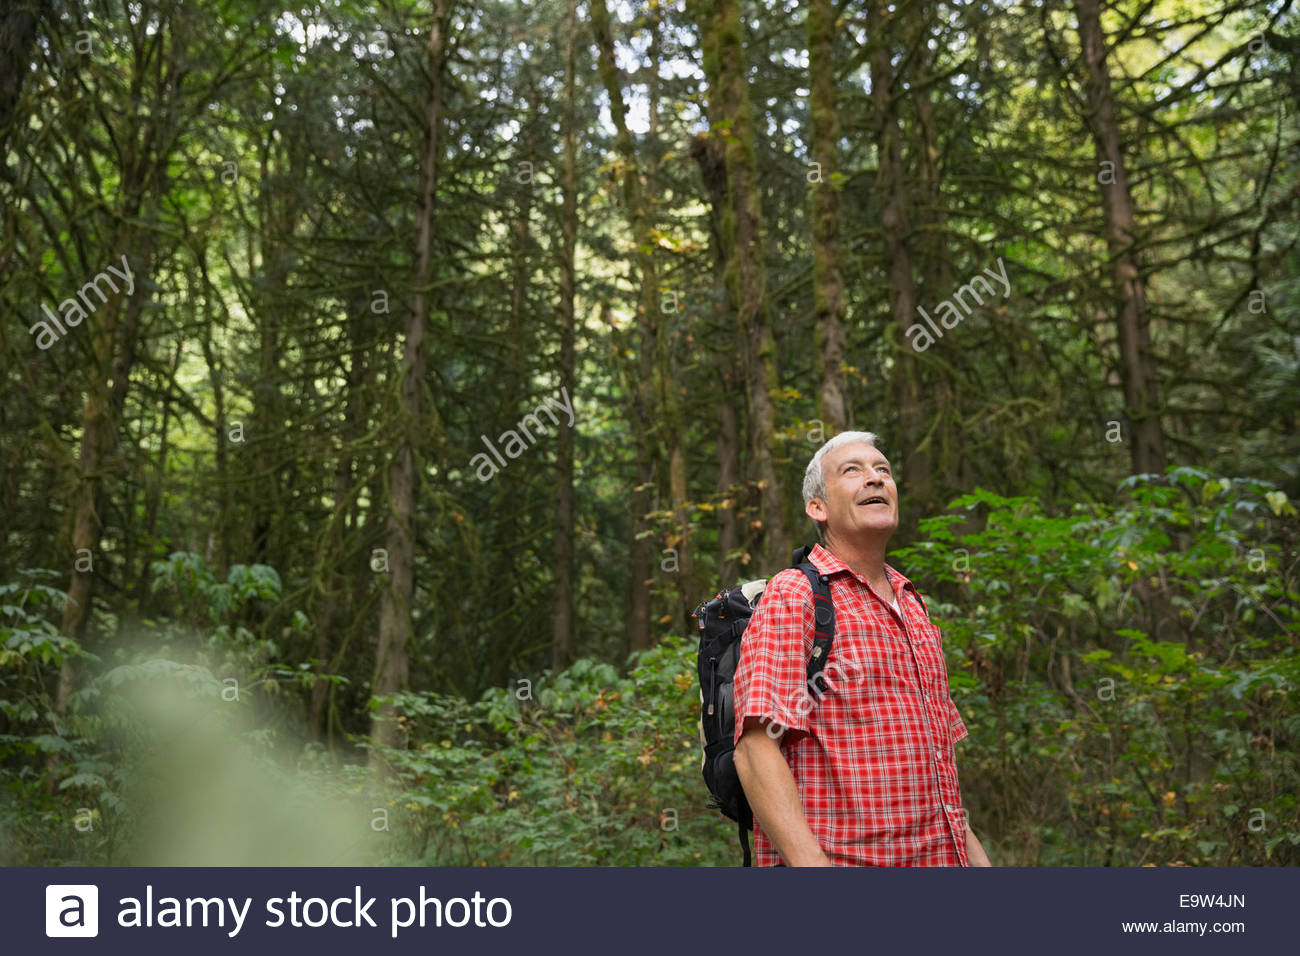 Man looking up at trees in woods - Stock Image